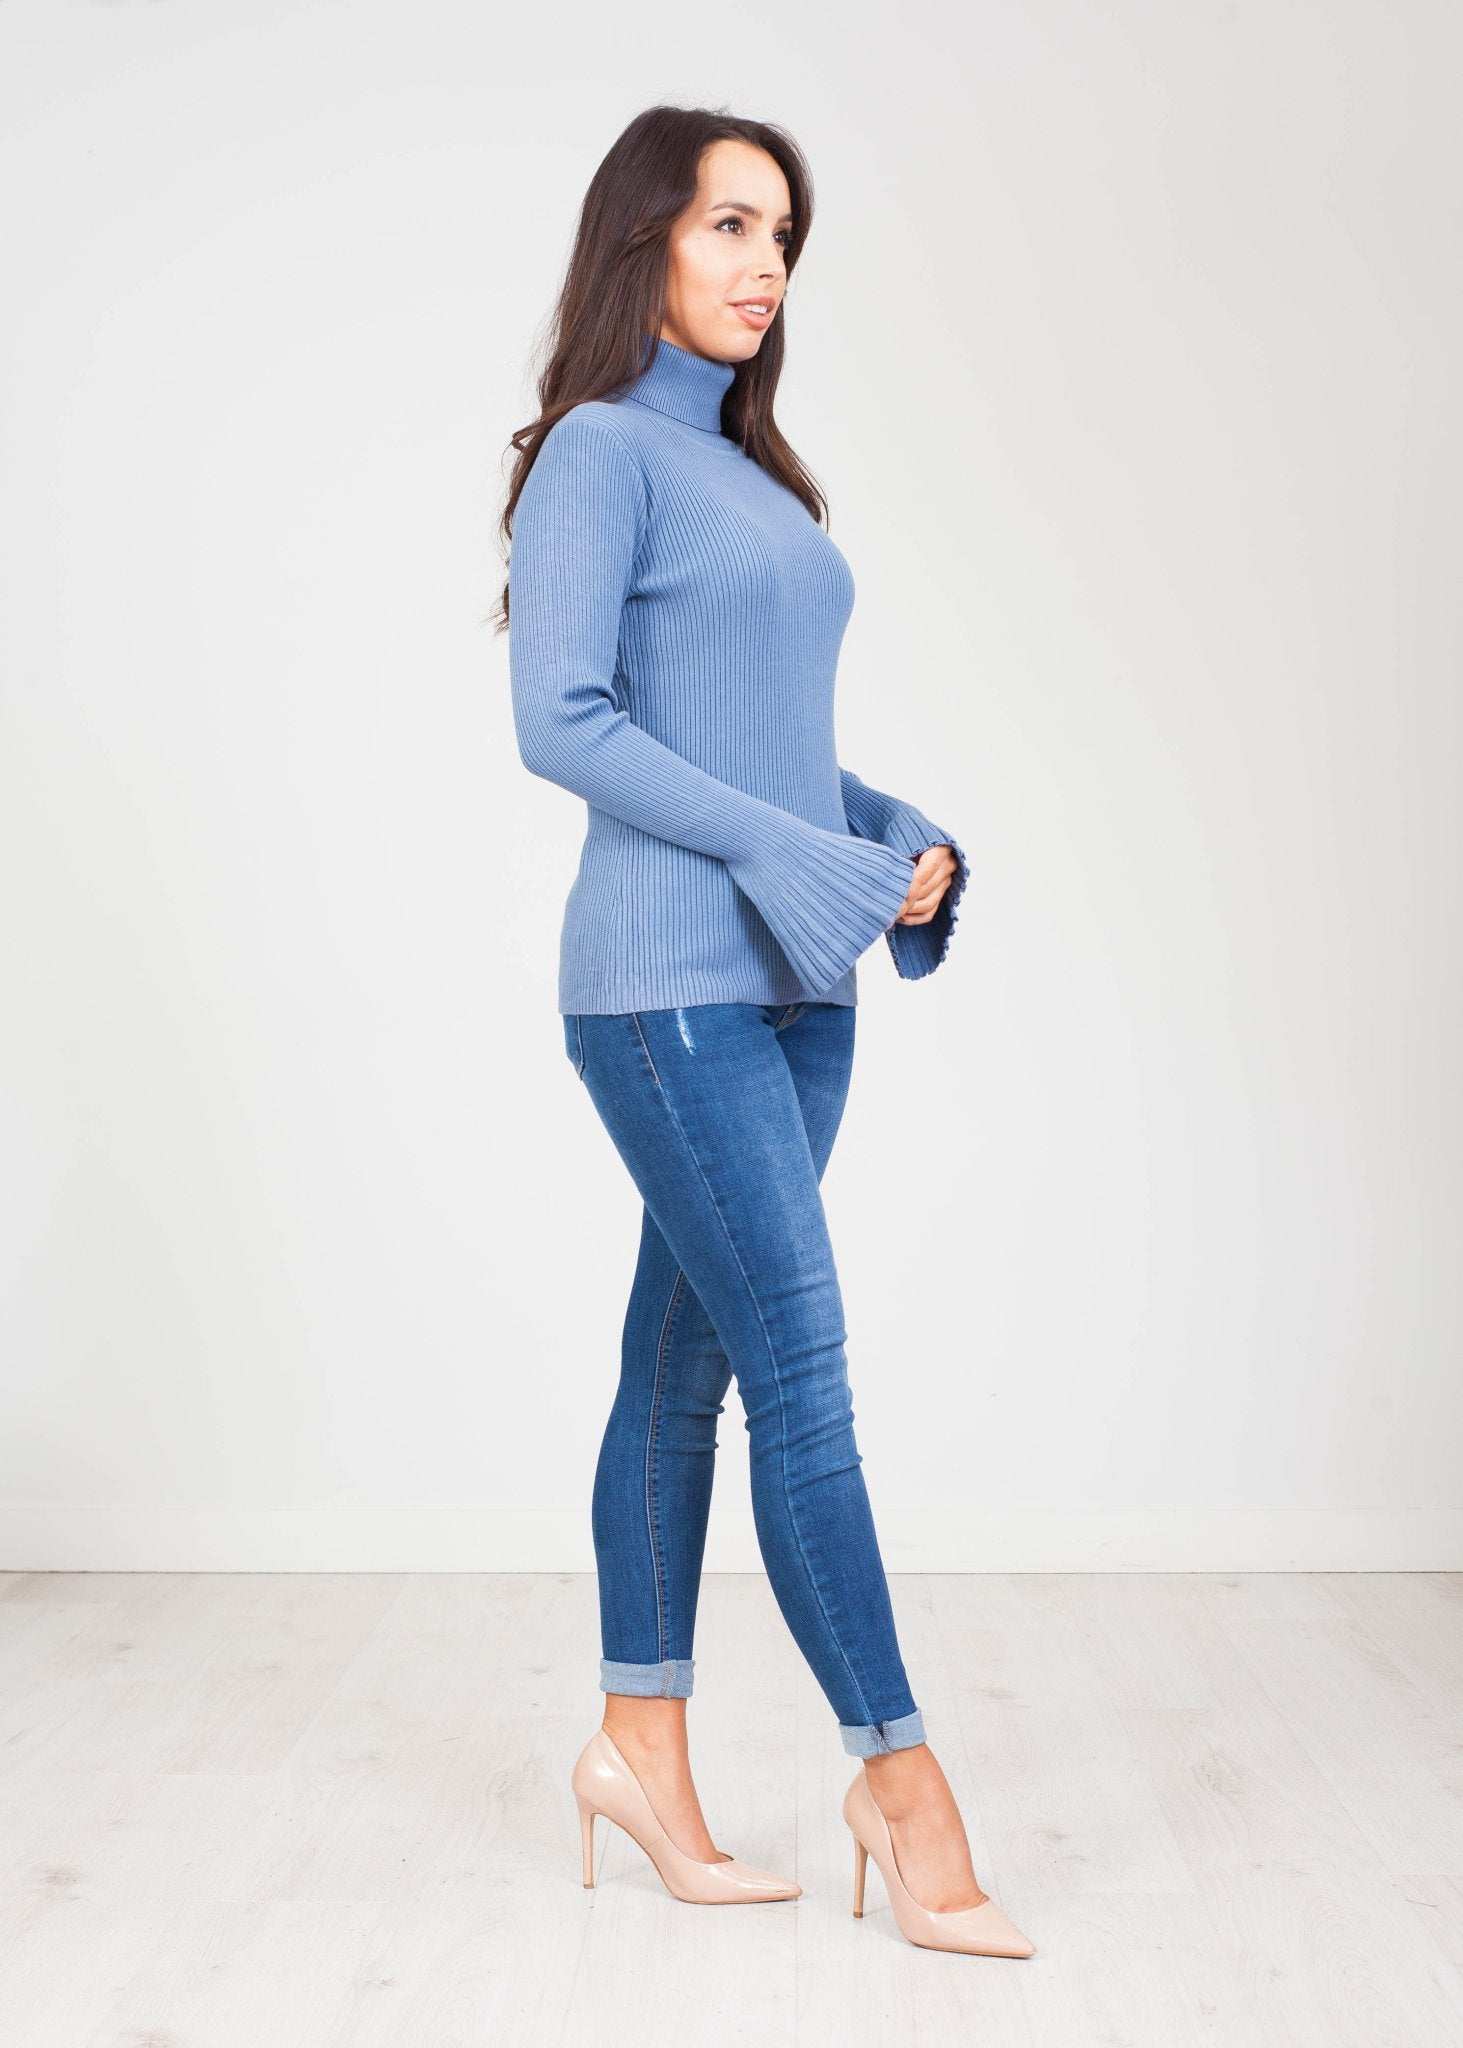 Emilia Polo Neck with Bell Cuff in Blue - The Walk in Wardrobe